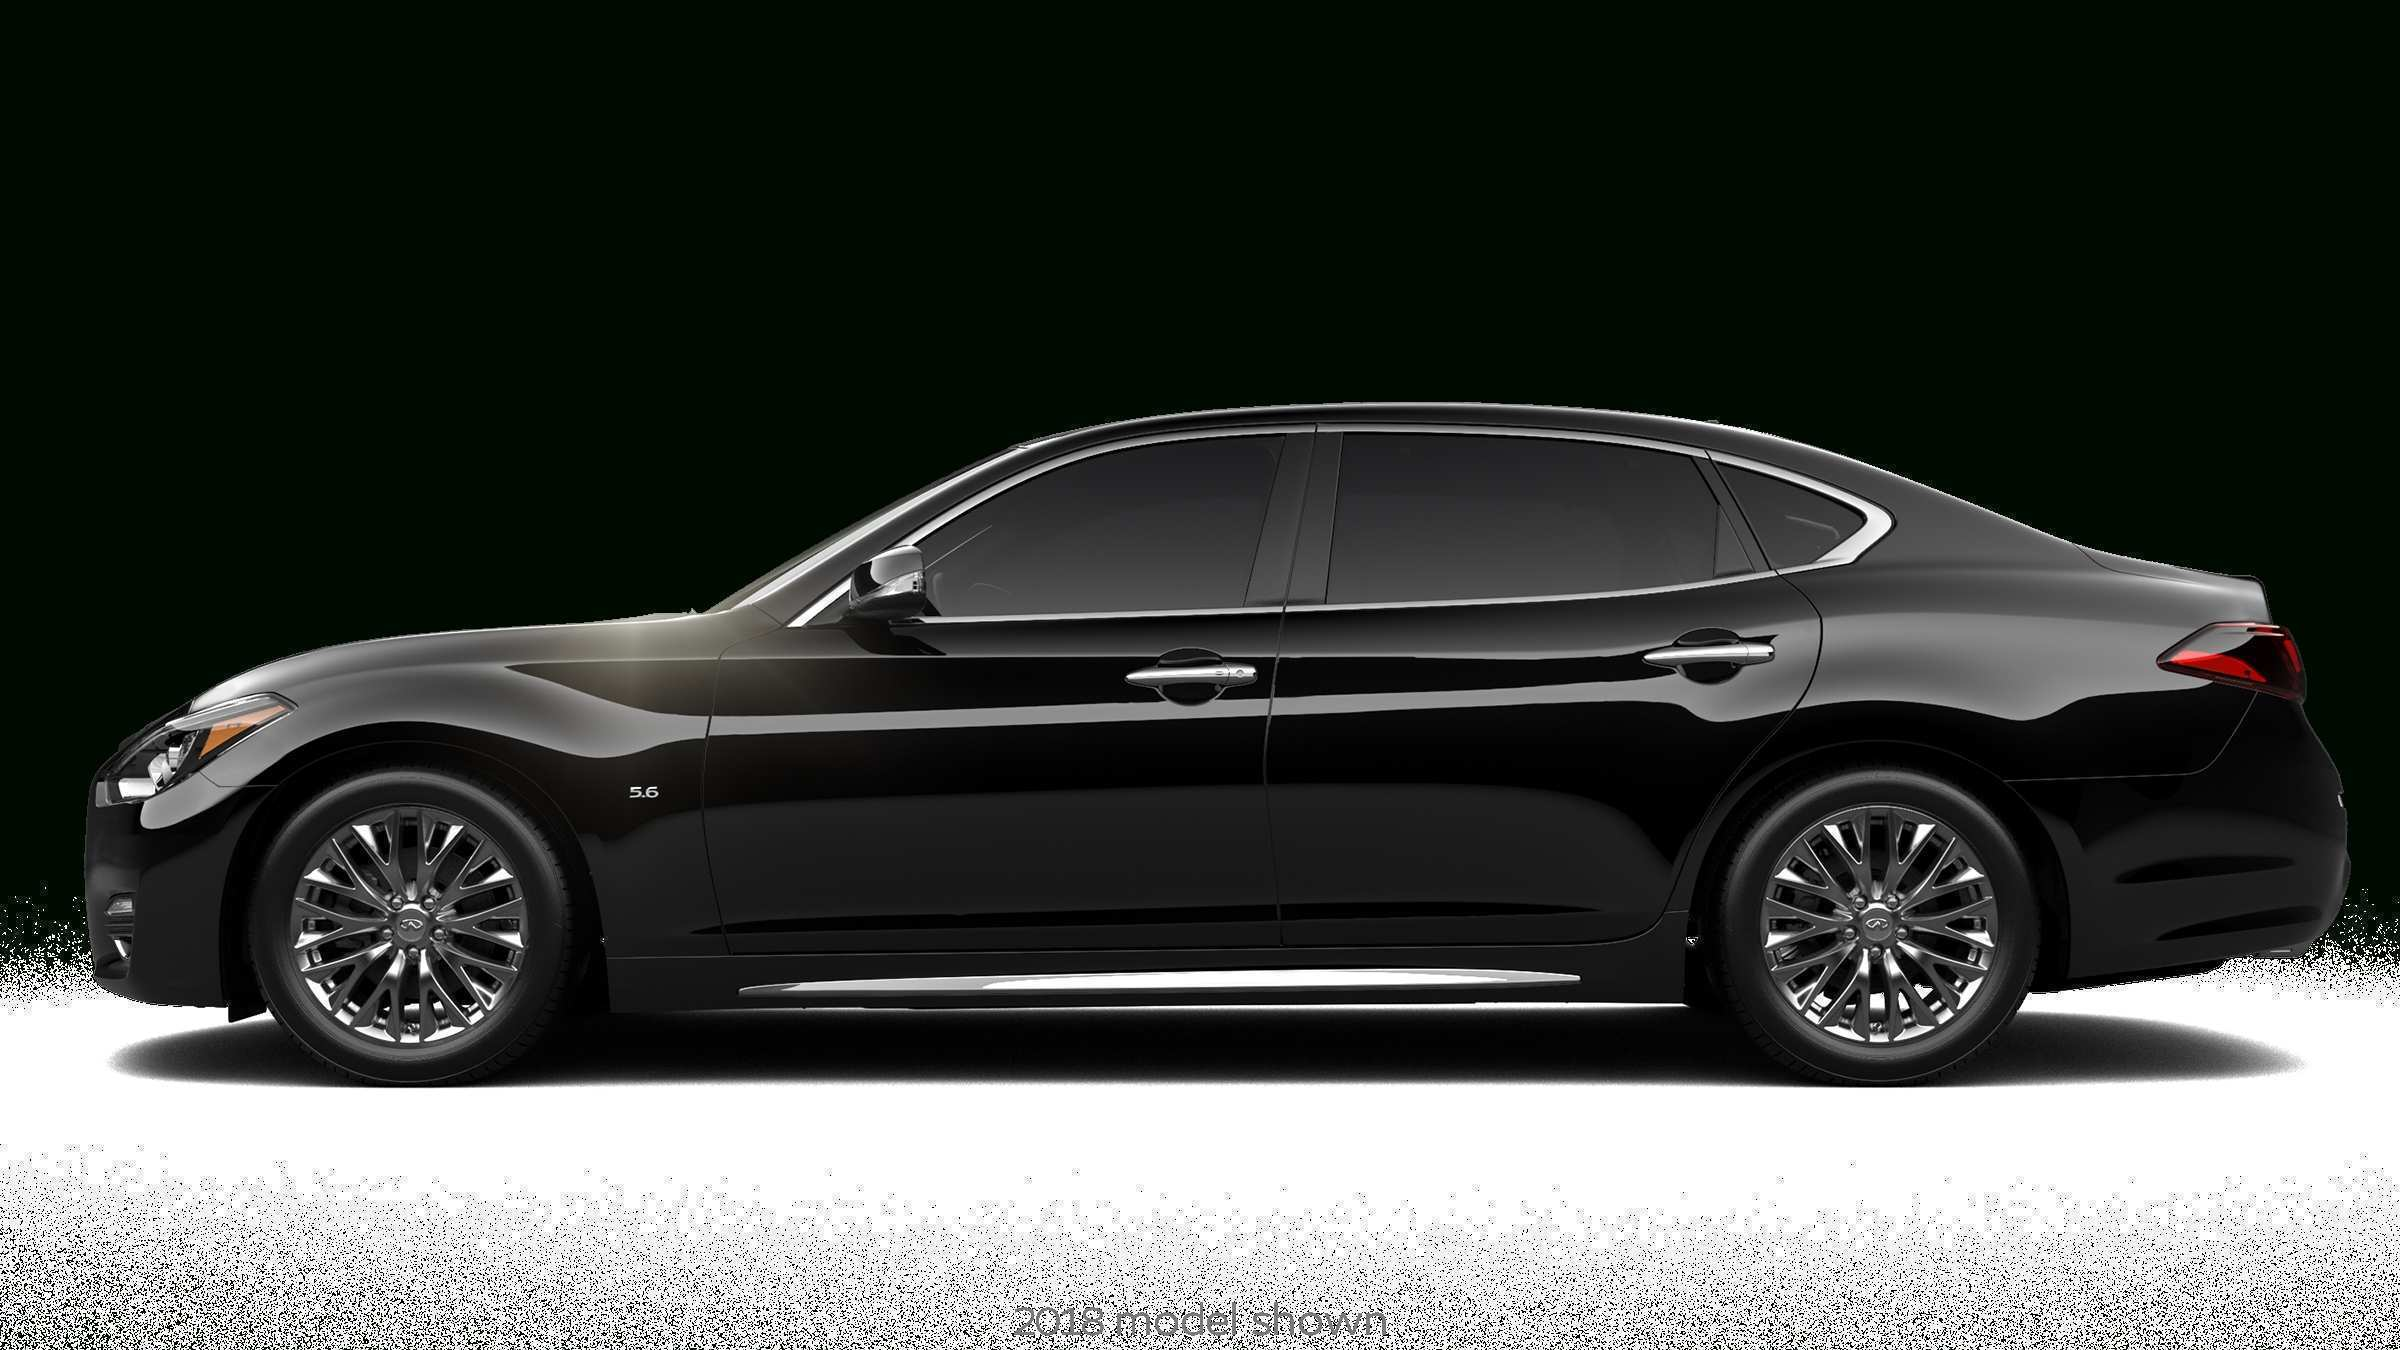 77 The Best 2020 Infiniti G Price And Review